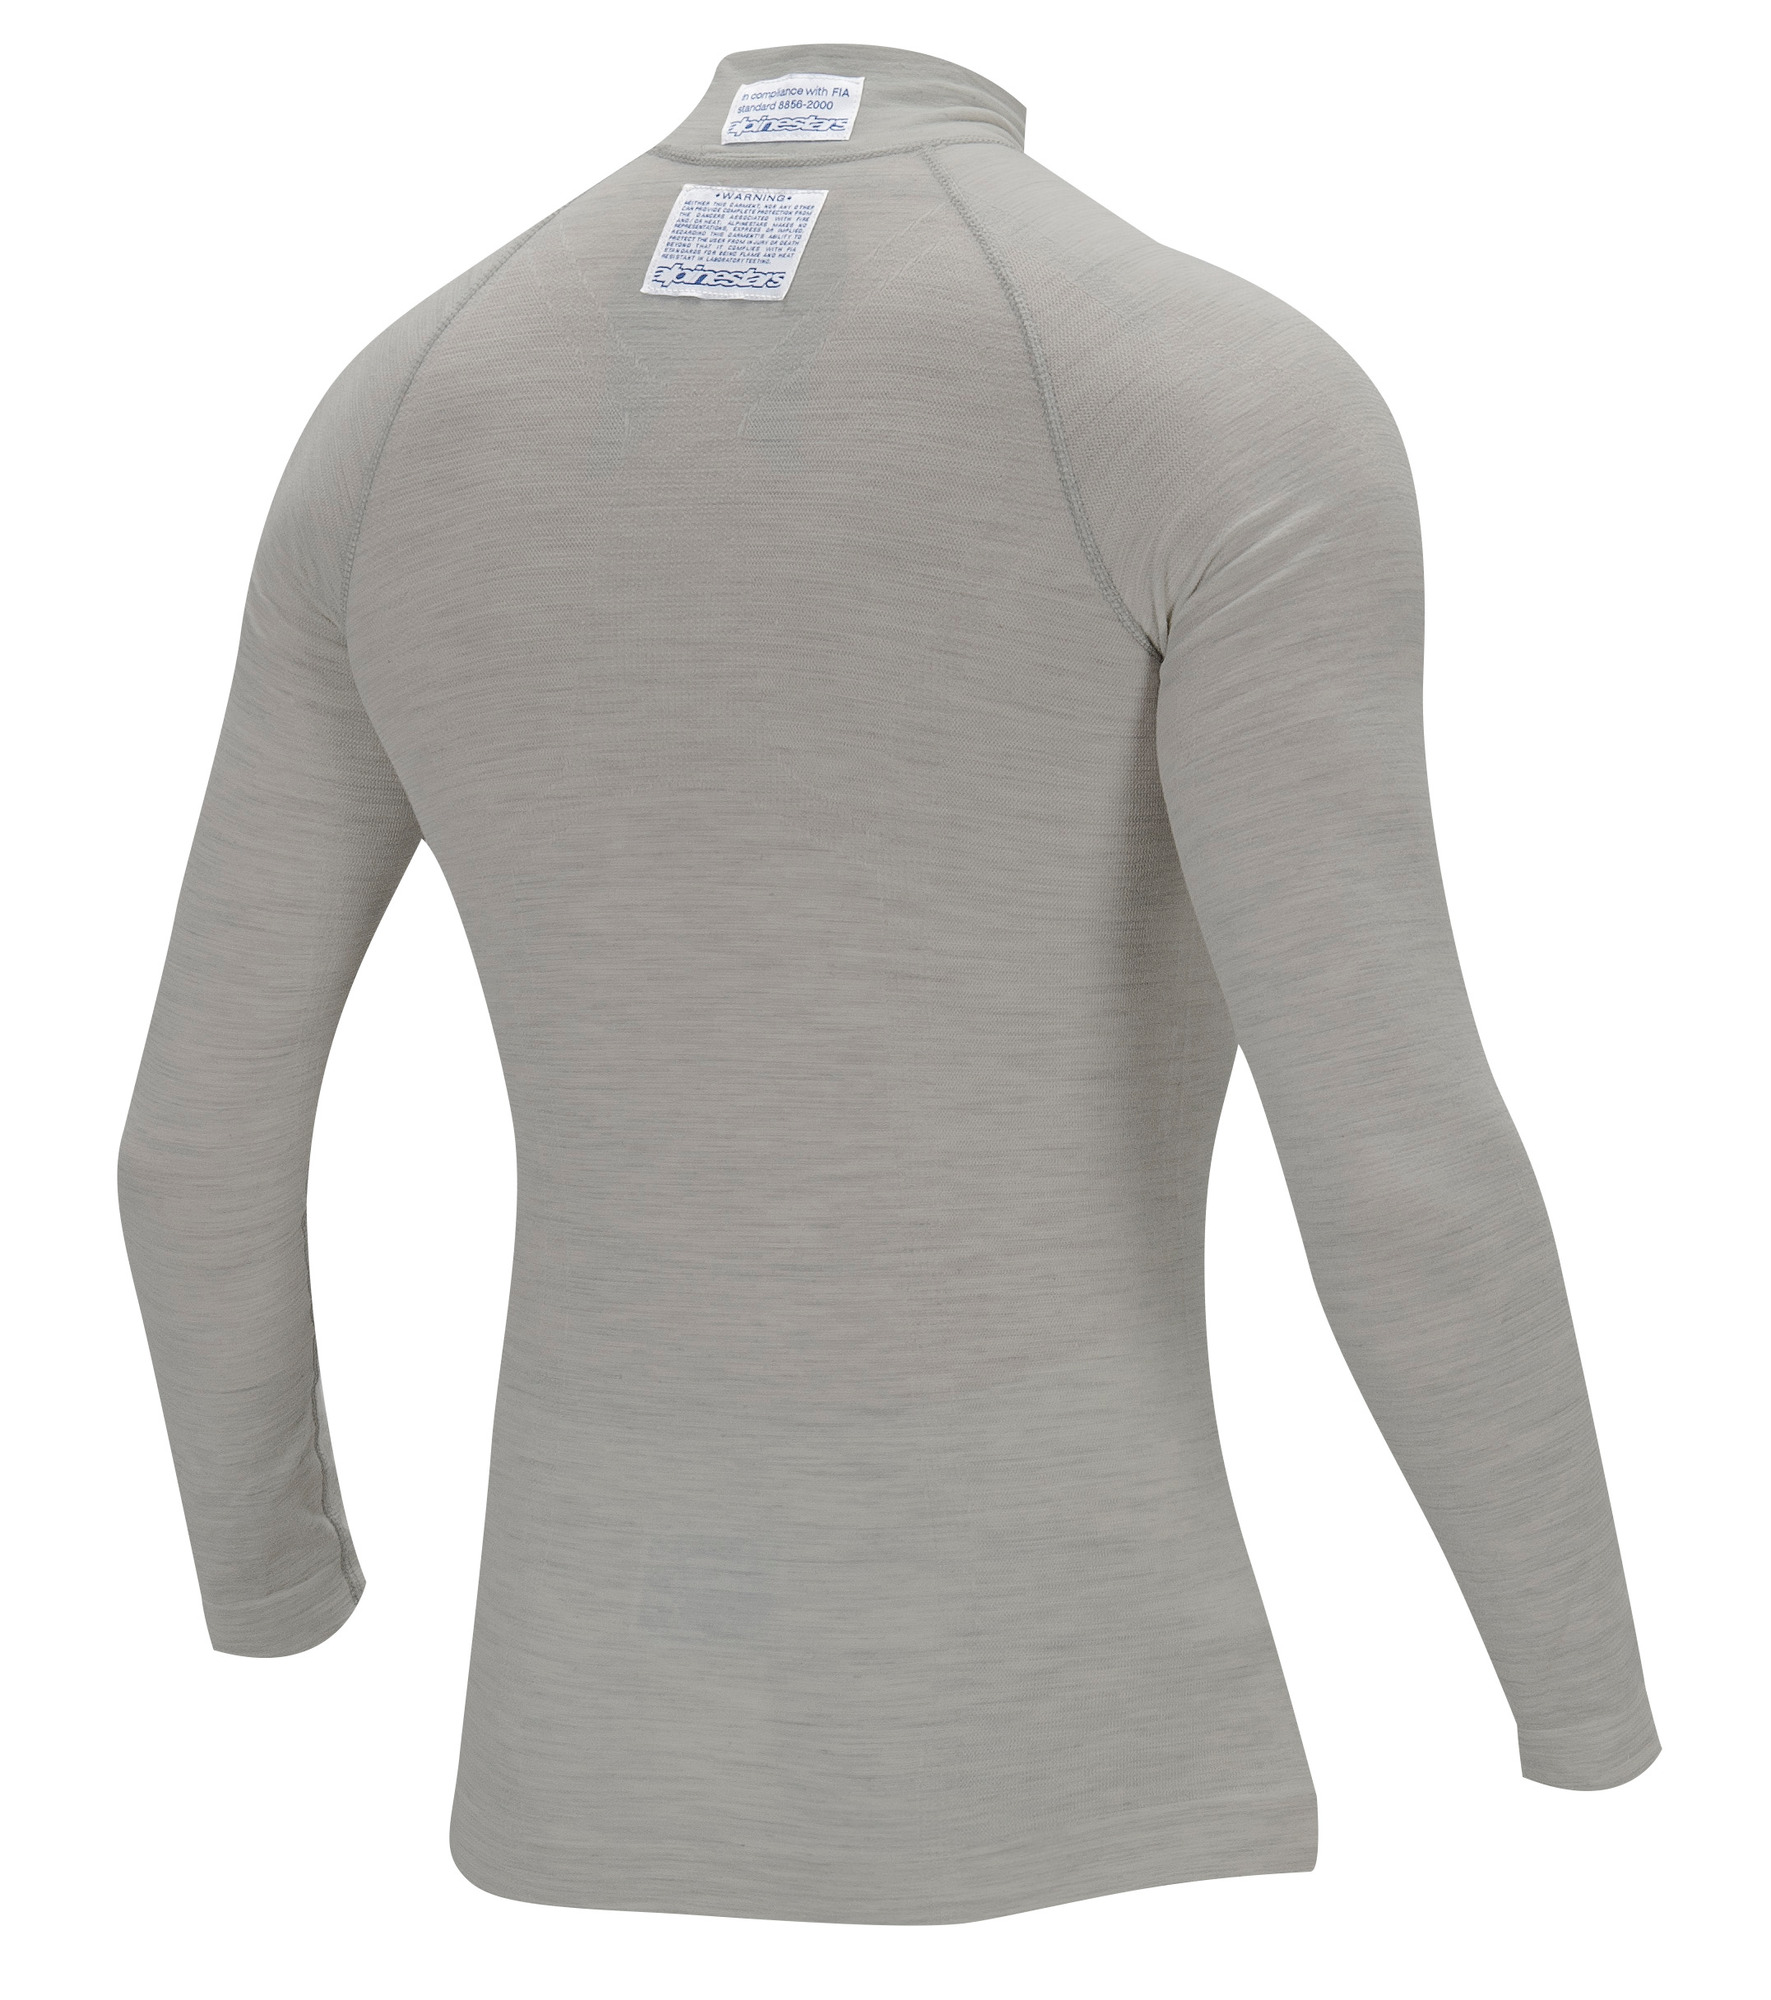 21aaac2ef1c1 Sentinel 4754012 Alpinestars ZX TOP Light Grey LS Long Sleeve Fireproof  Racing Karting